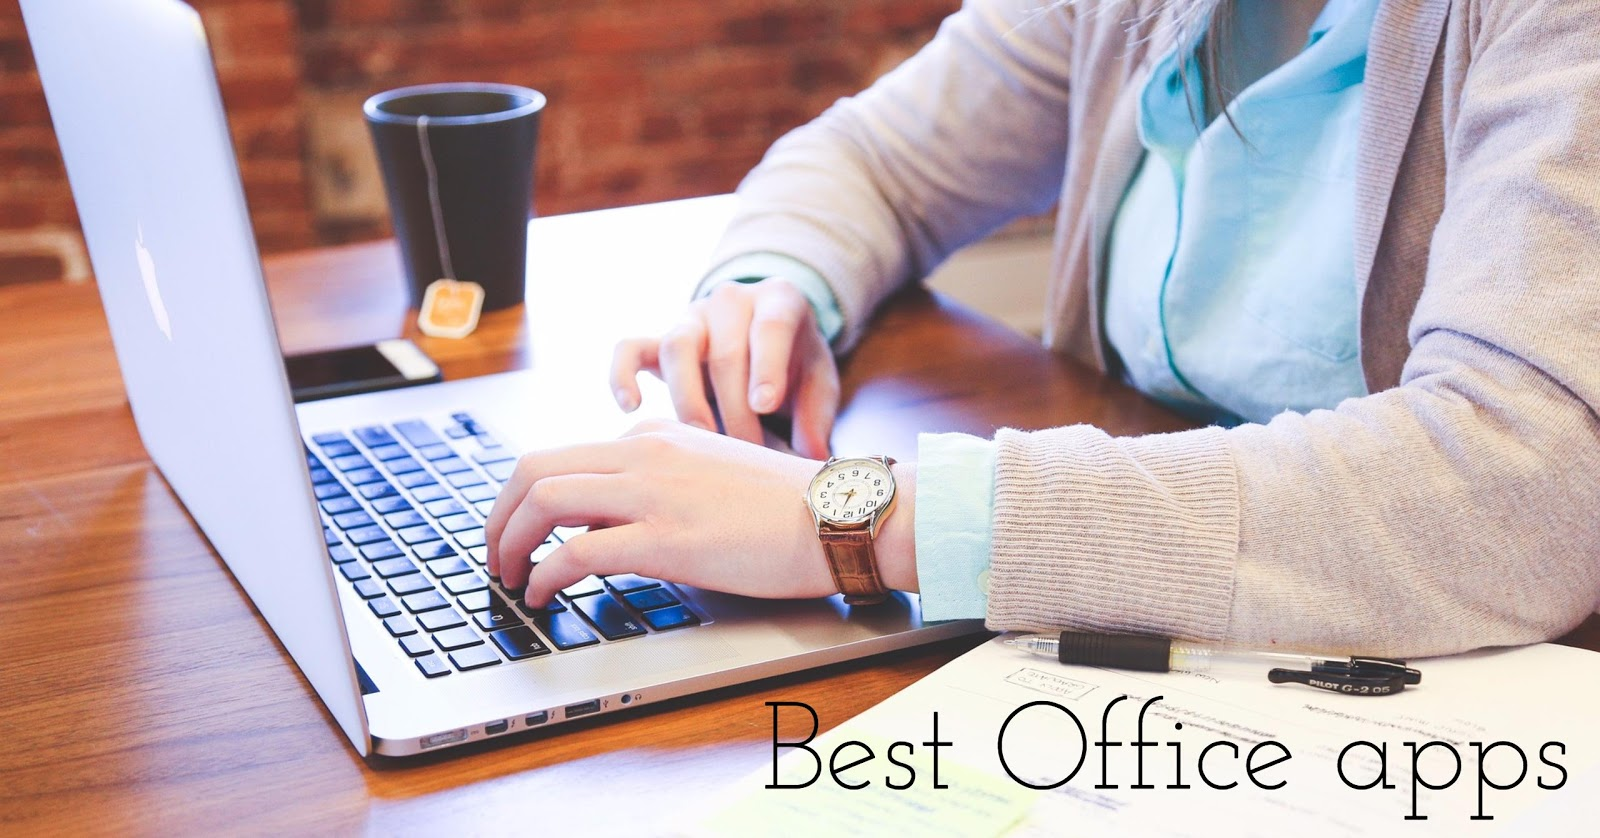 Best Office apps for iPad & iPhone